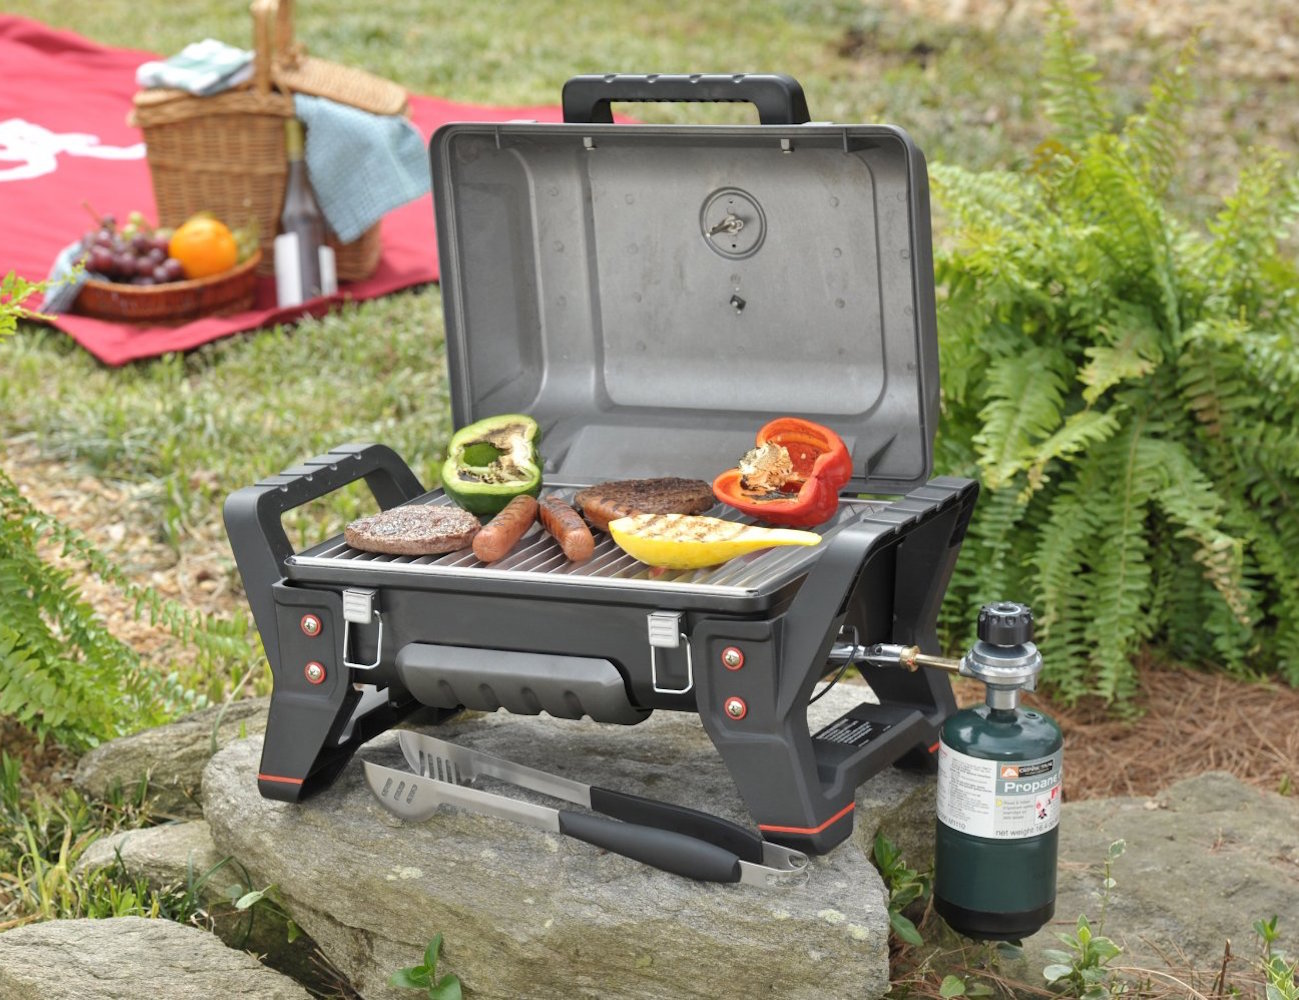 Char-Broil Grill2Go X200 – Portable Grill For On-The-Go BBQs